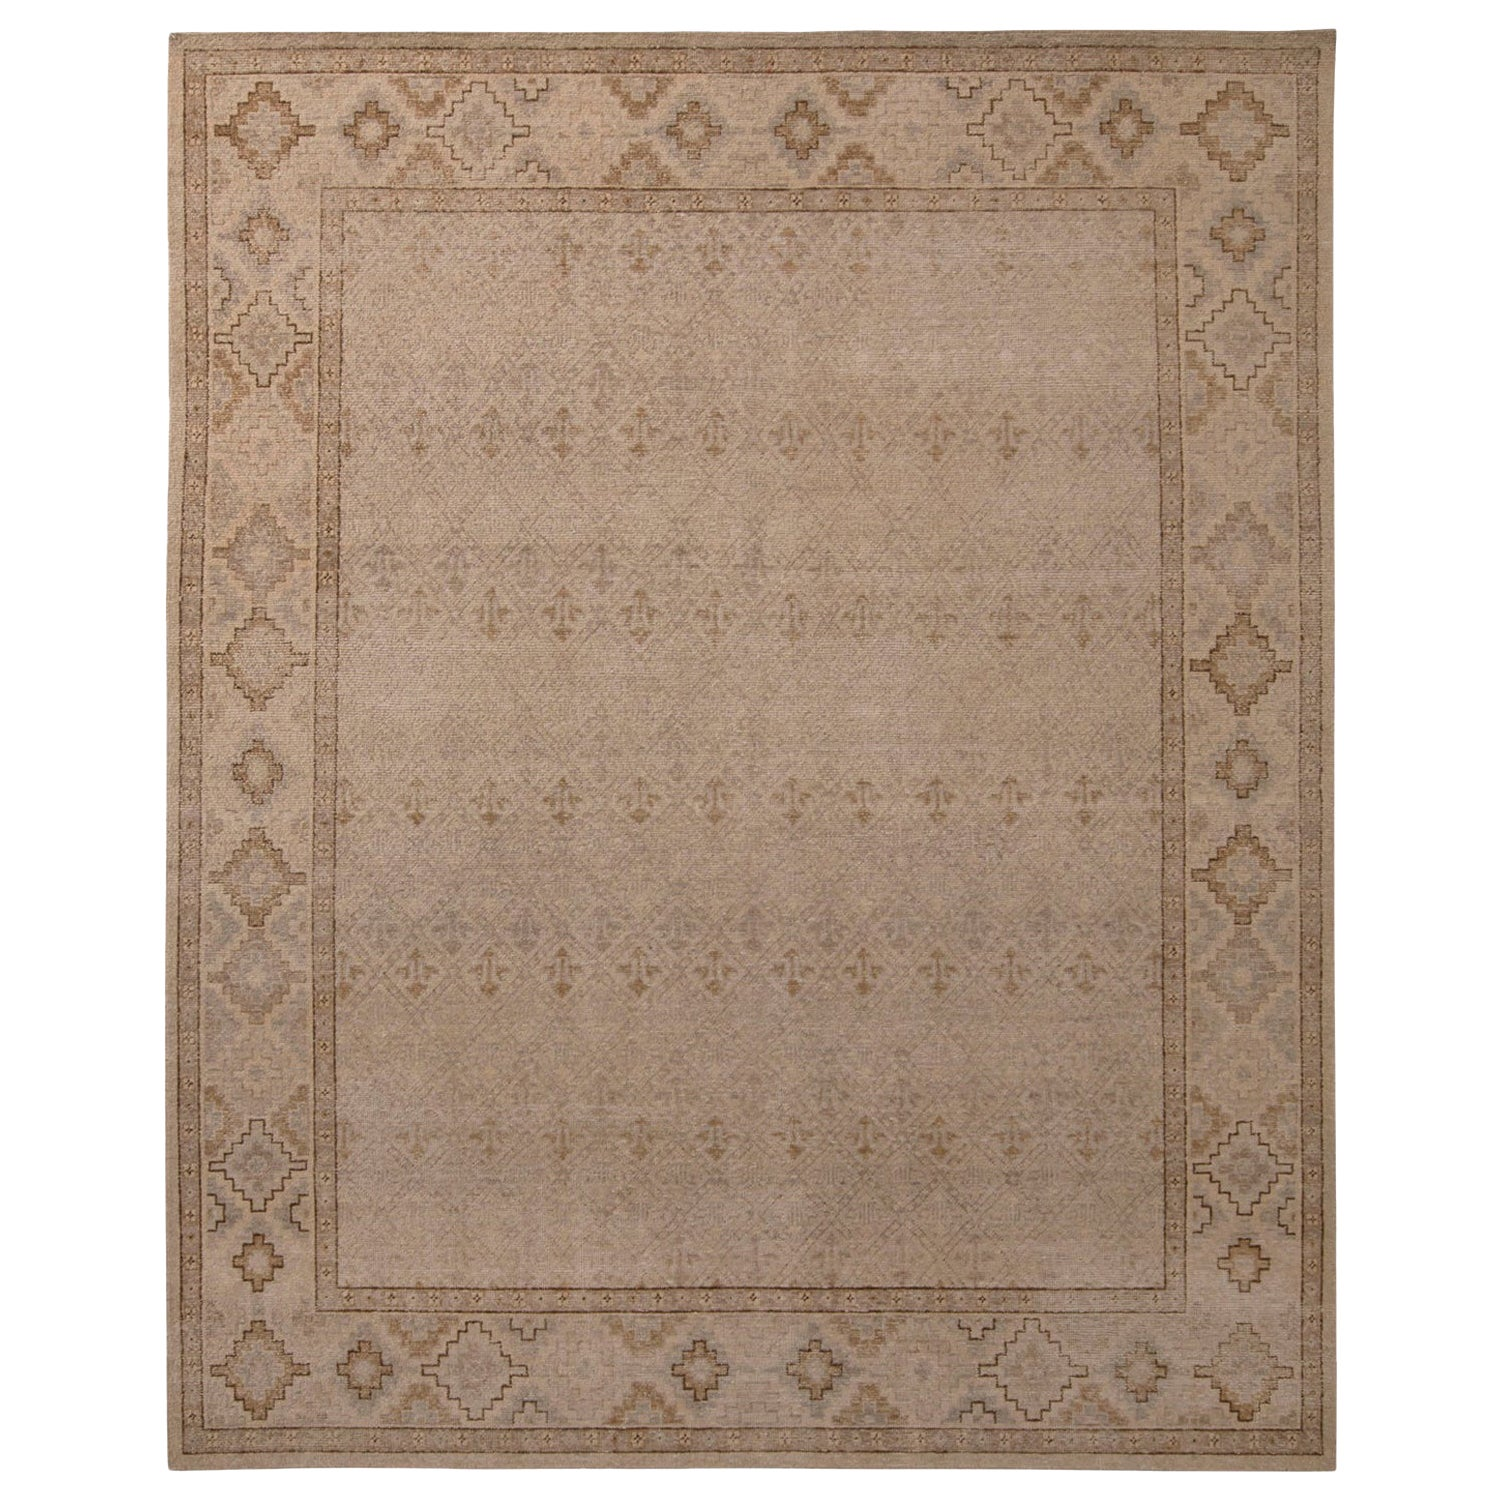 Rug & Kilim's Homage Geometric Beige-Brown and Gray Wool Custom Rug